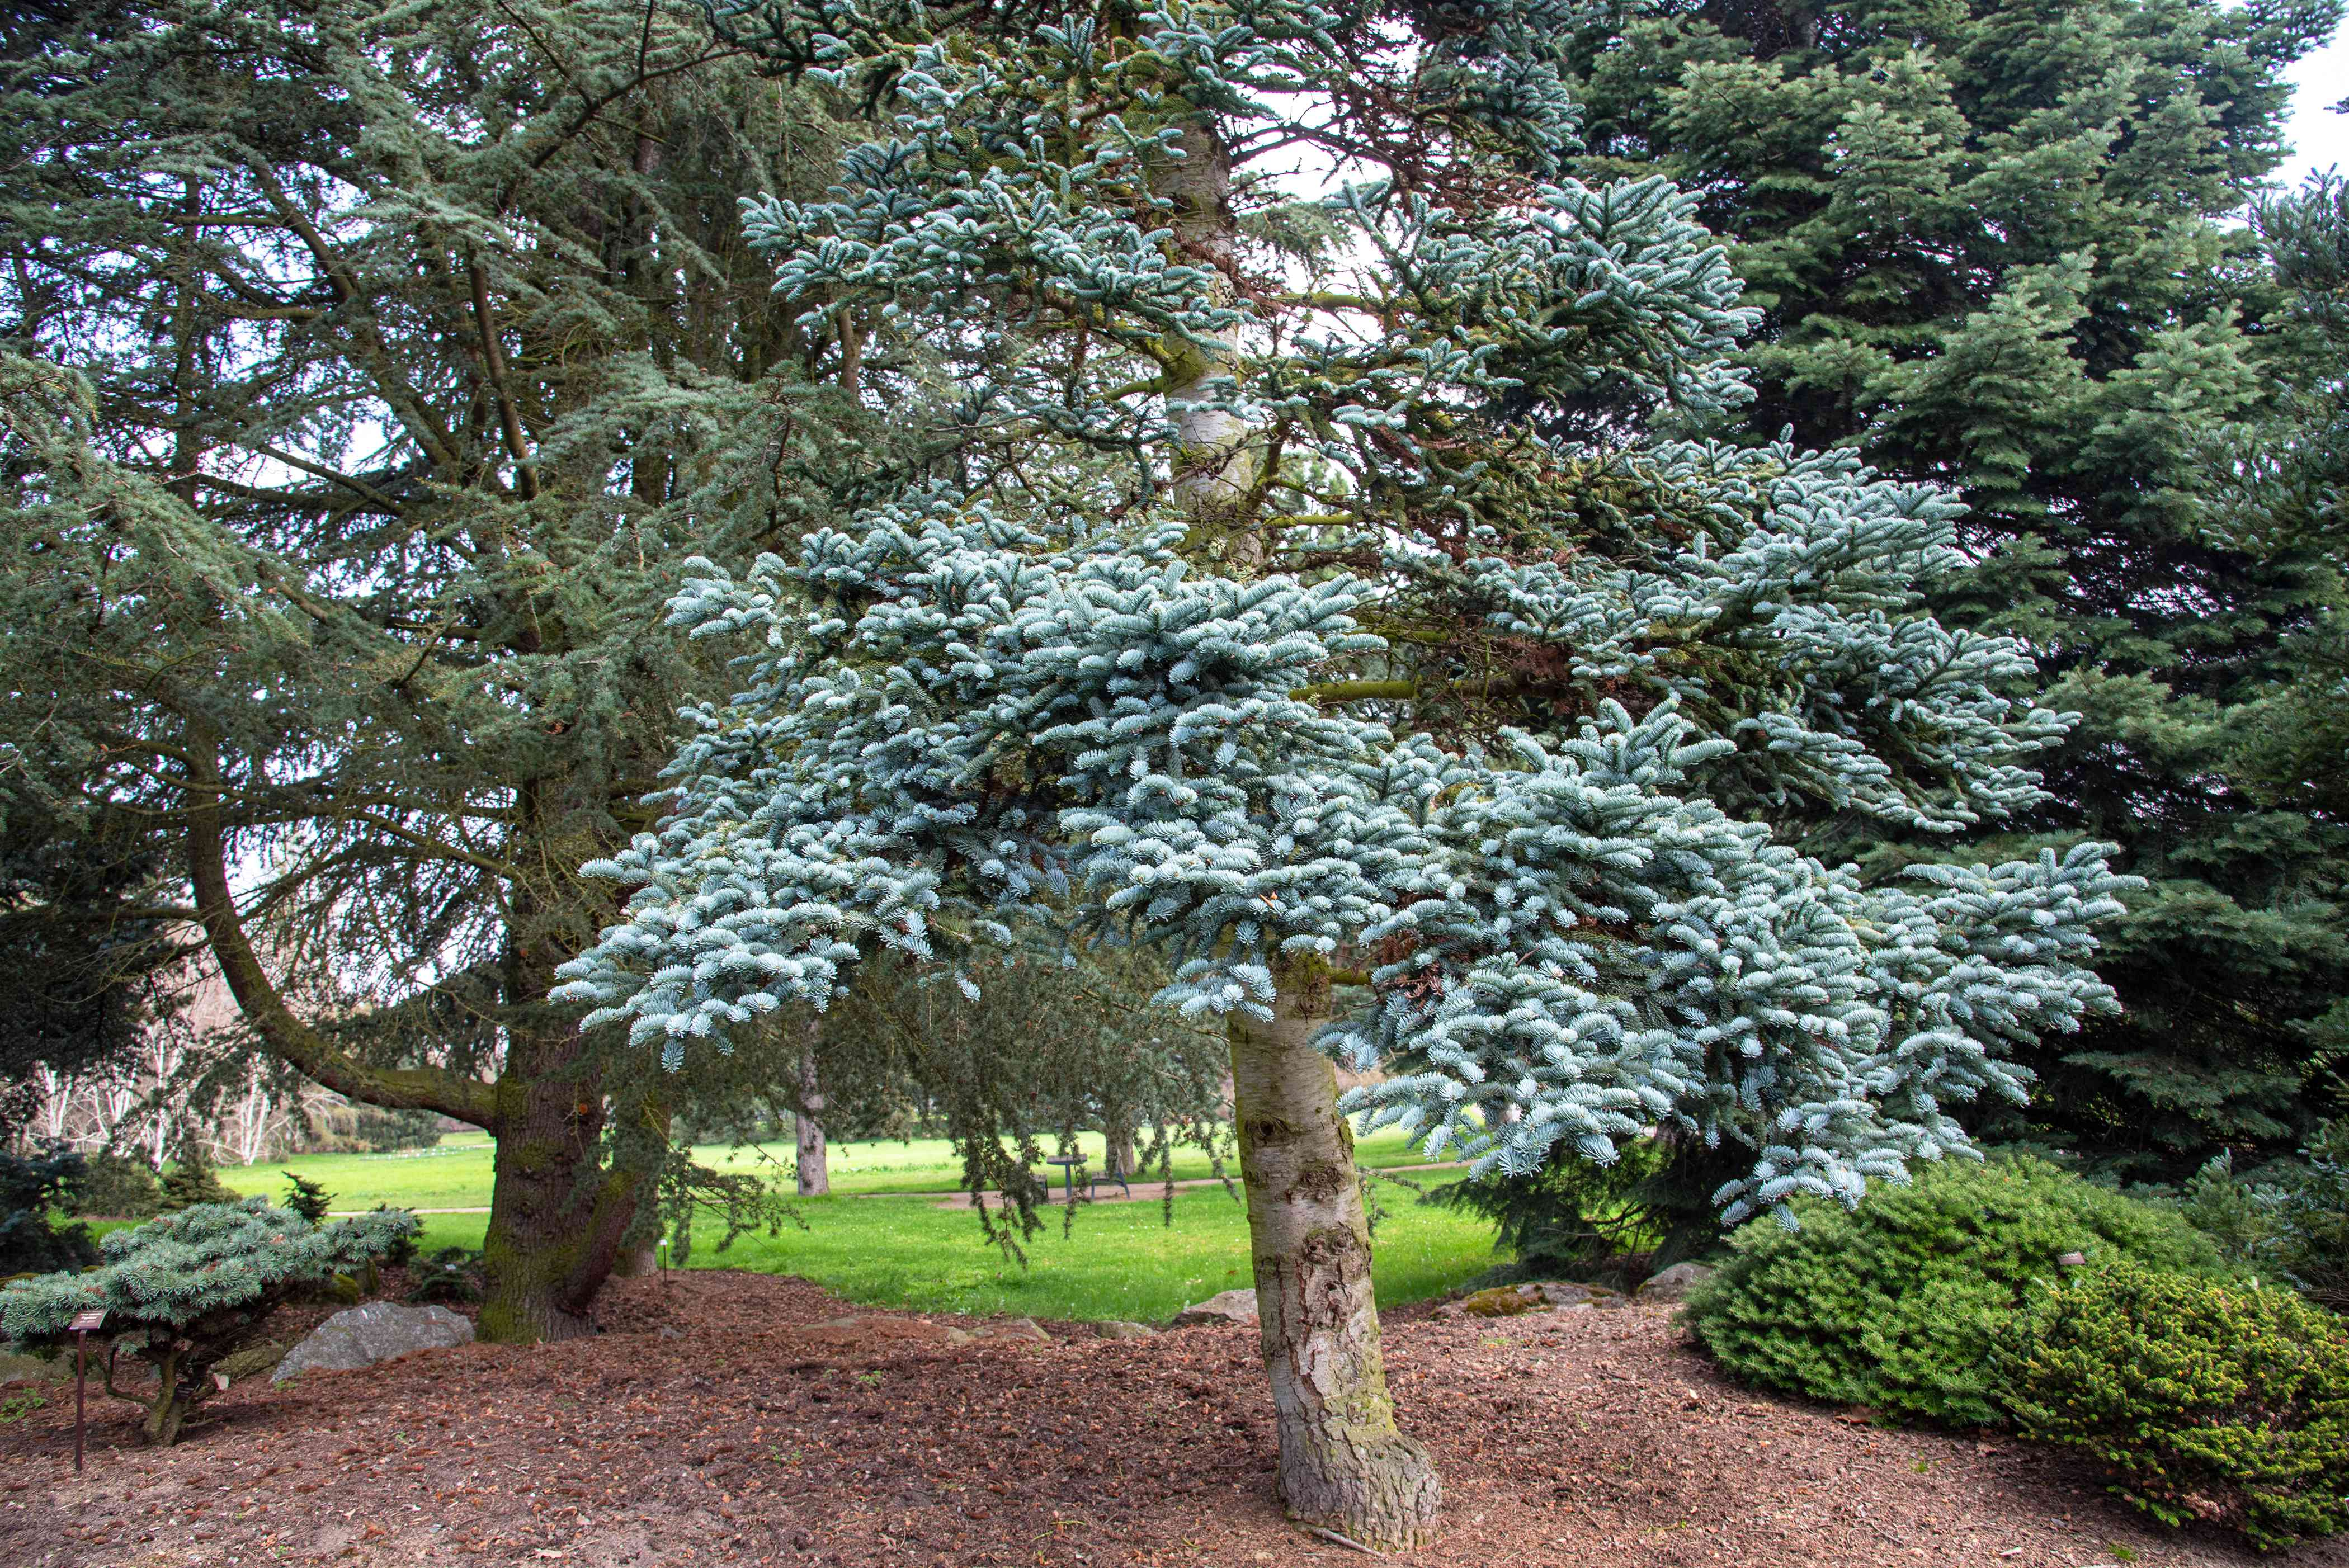 Noble fir tree in middle of landscape with bright blue-gray needles on branches